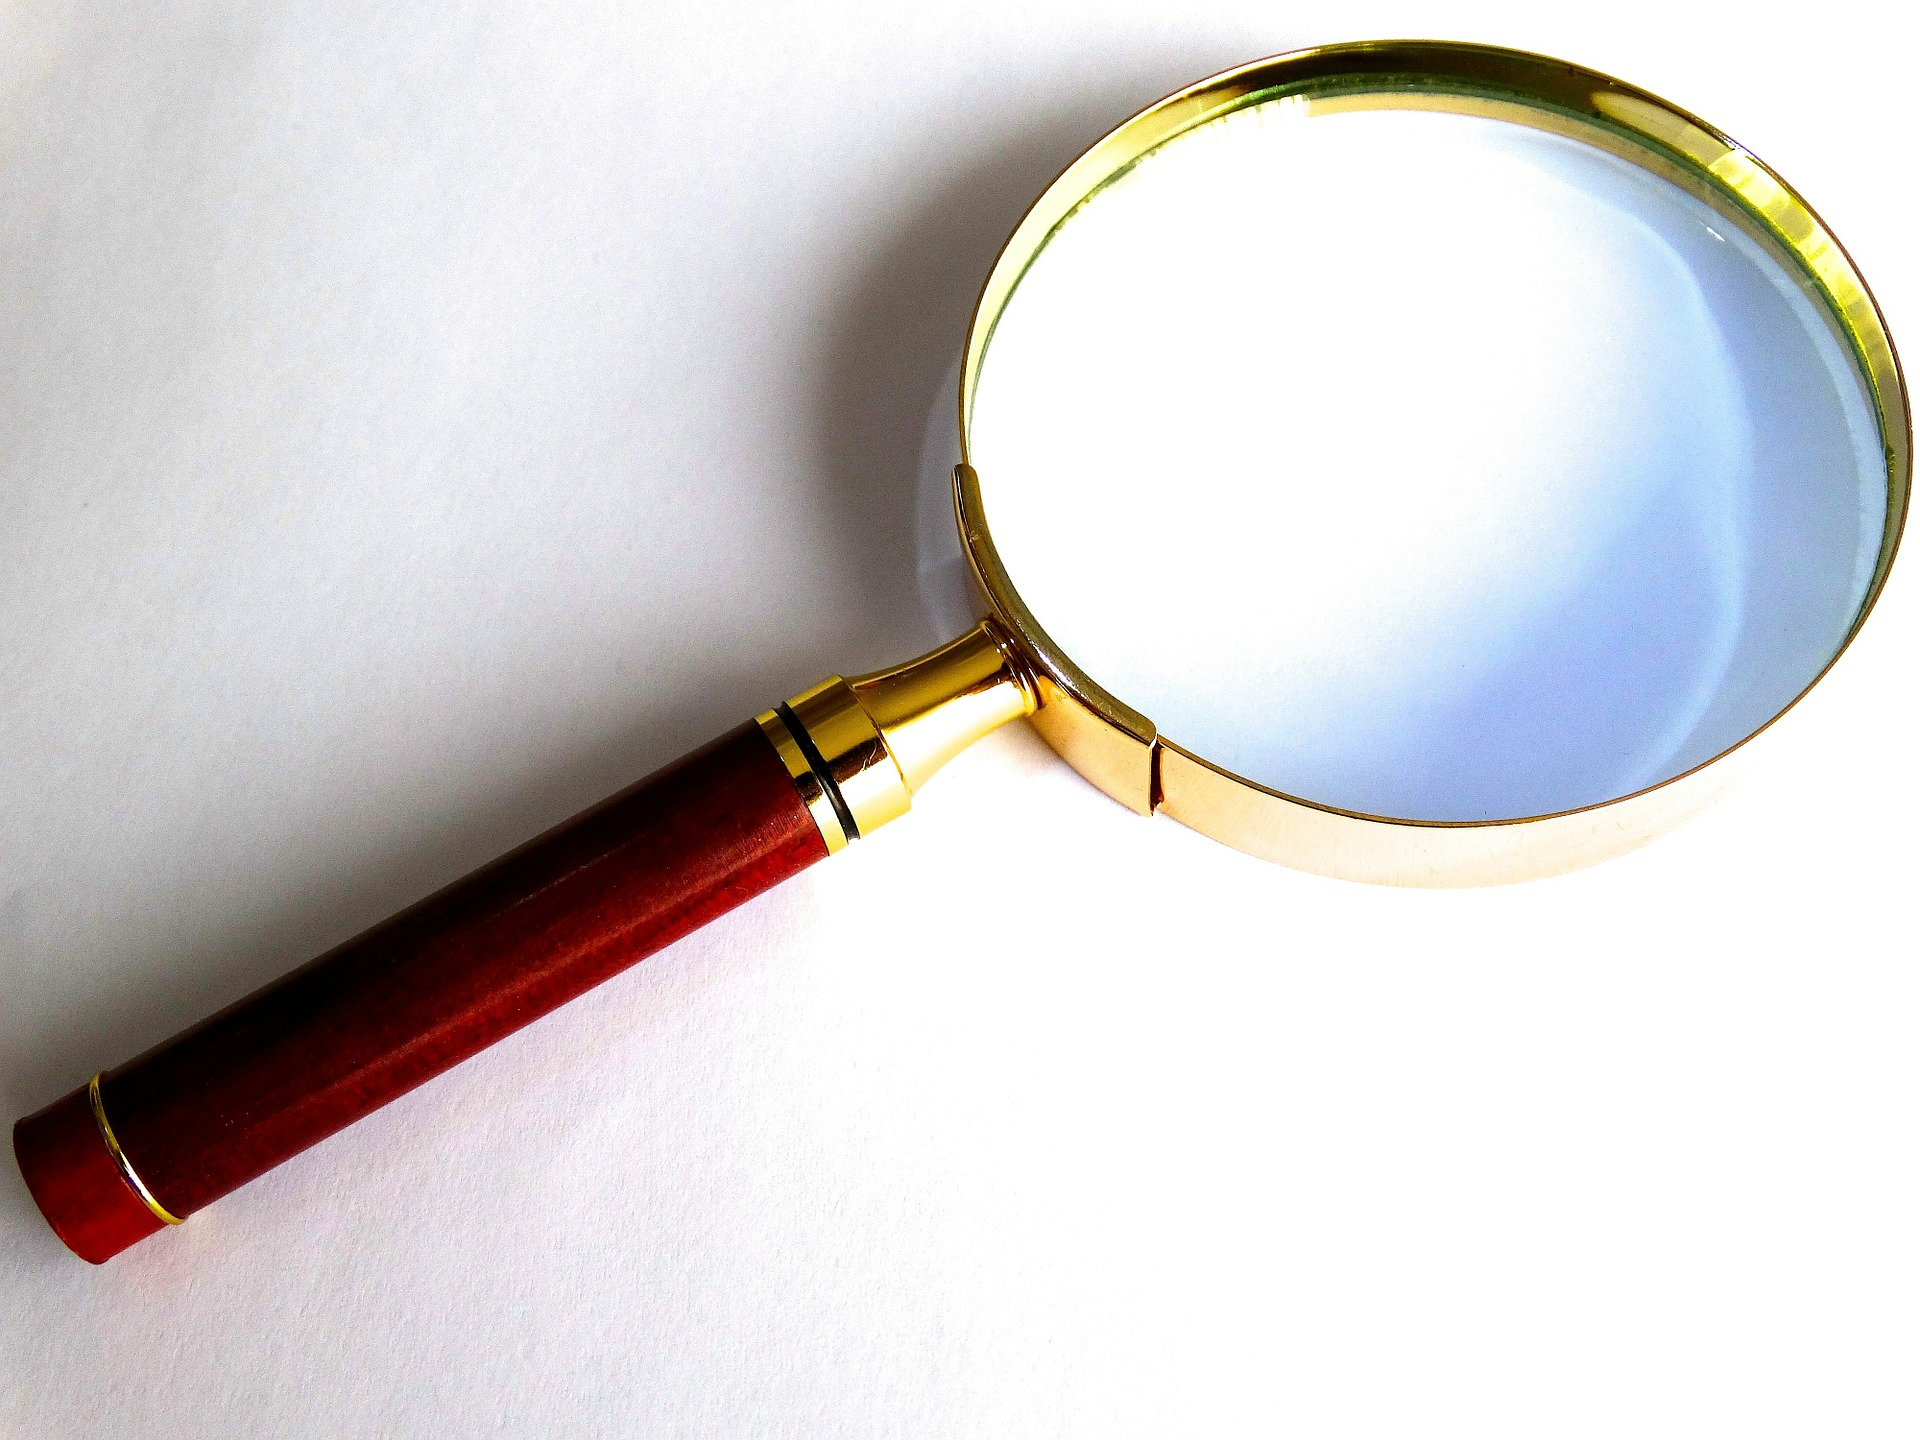 magnifying-glass-450690_1920